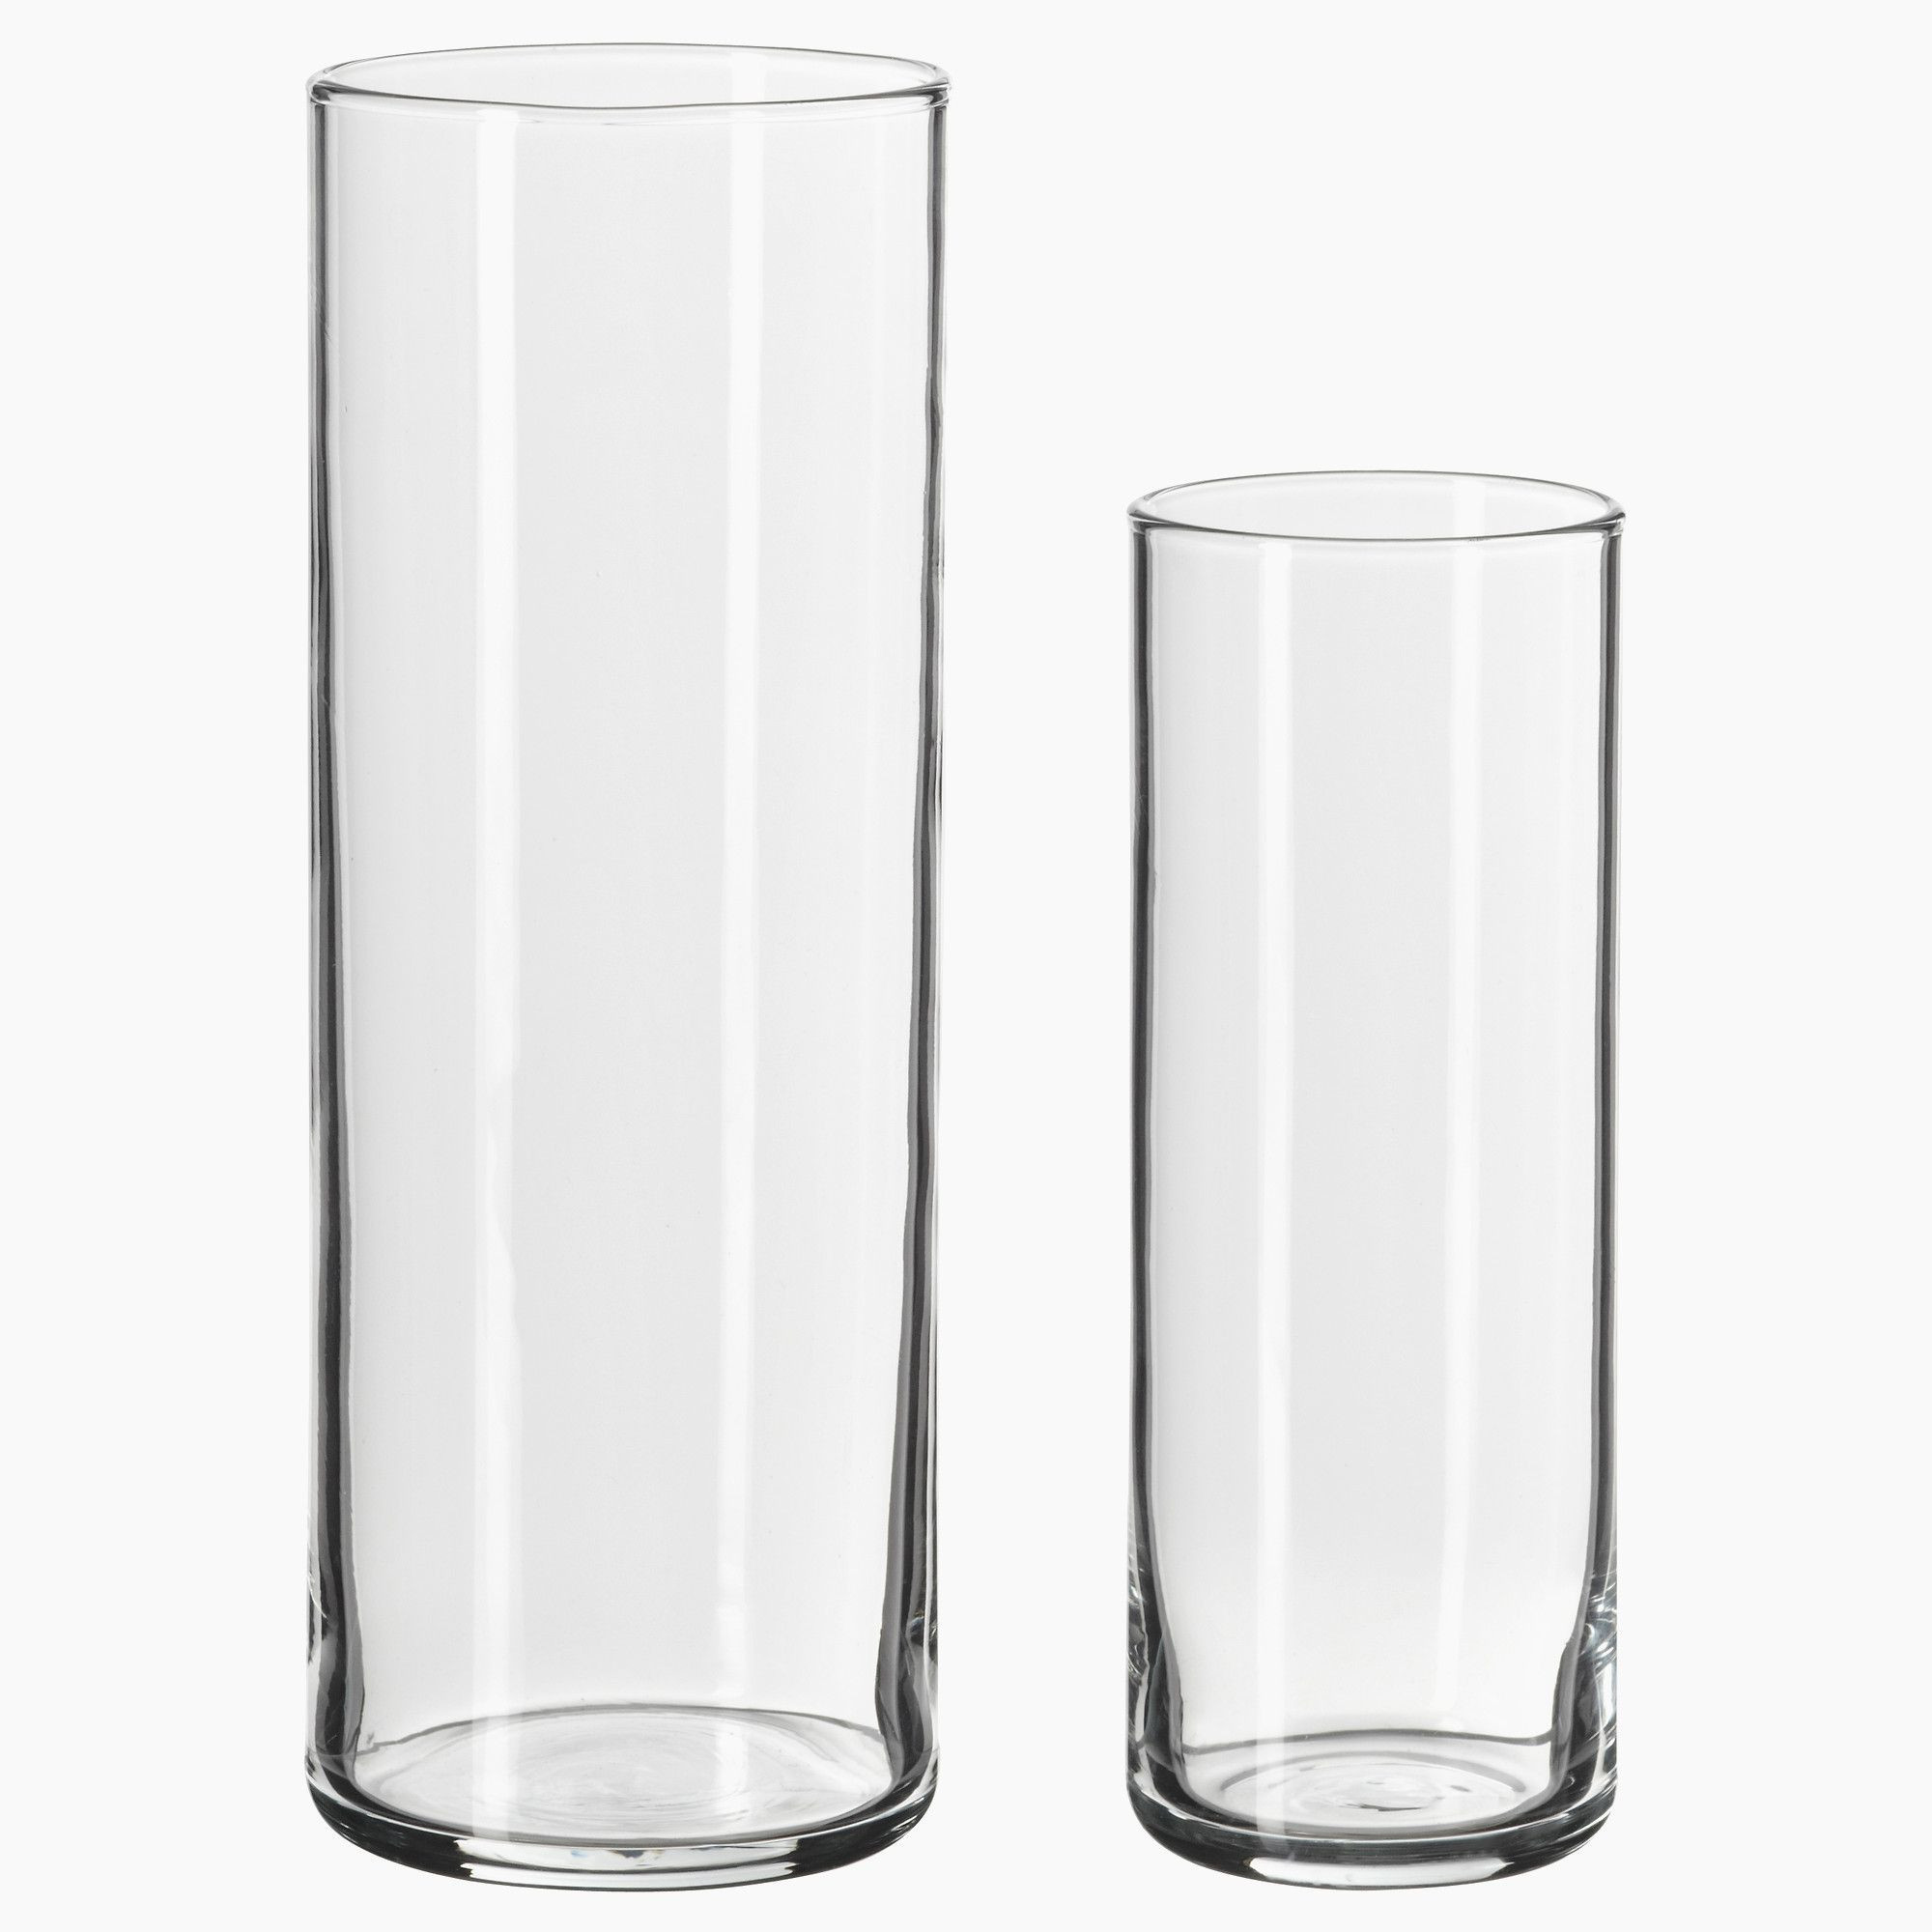 26 Spectacular Clear Glass Vases Michaels 2021 free download clear glass vases michaels of 24 tall vases for sale the weekly world with regard to wooden wall vase new tall vase centerpiece ideas vases flowers in